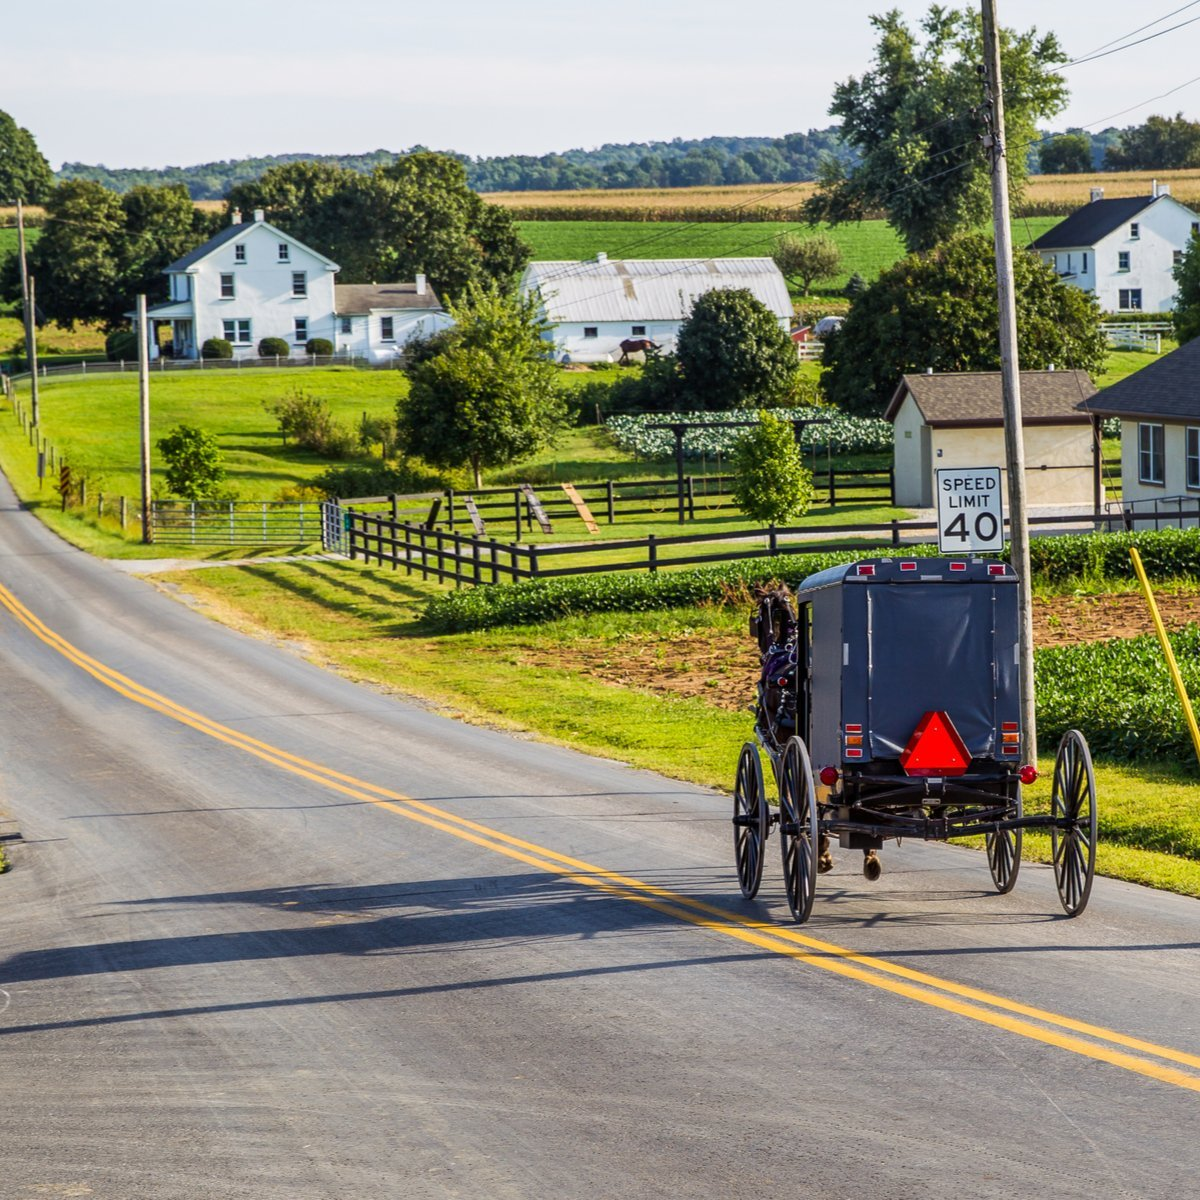 A horse and buggy ride through Lancaster, Pennsylvania.